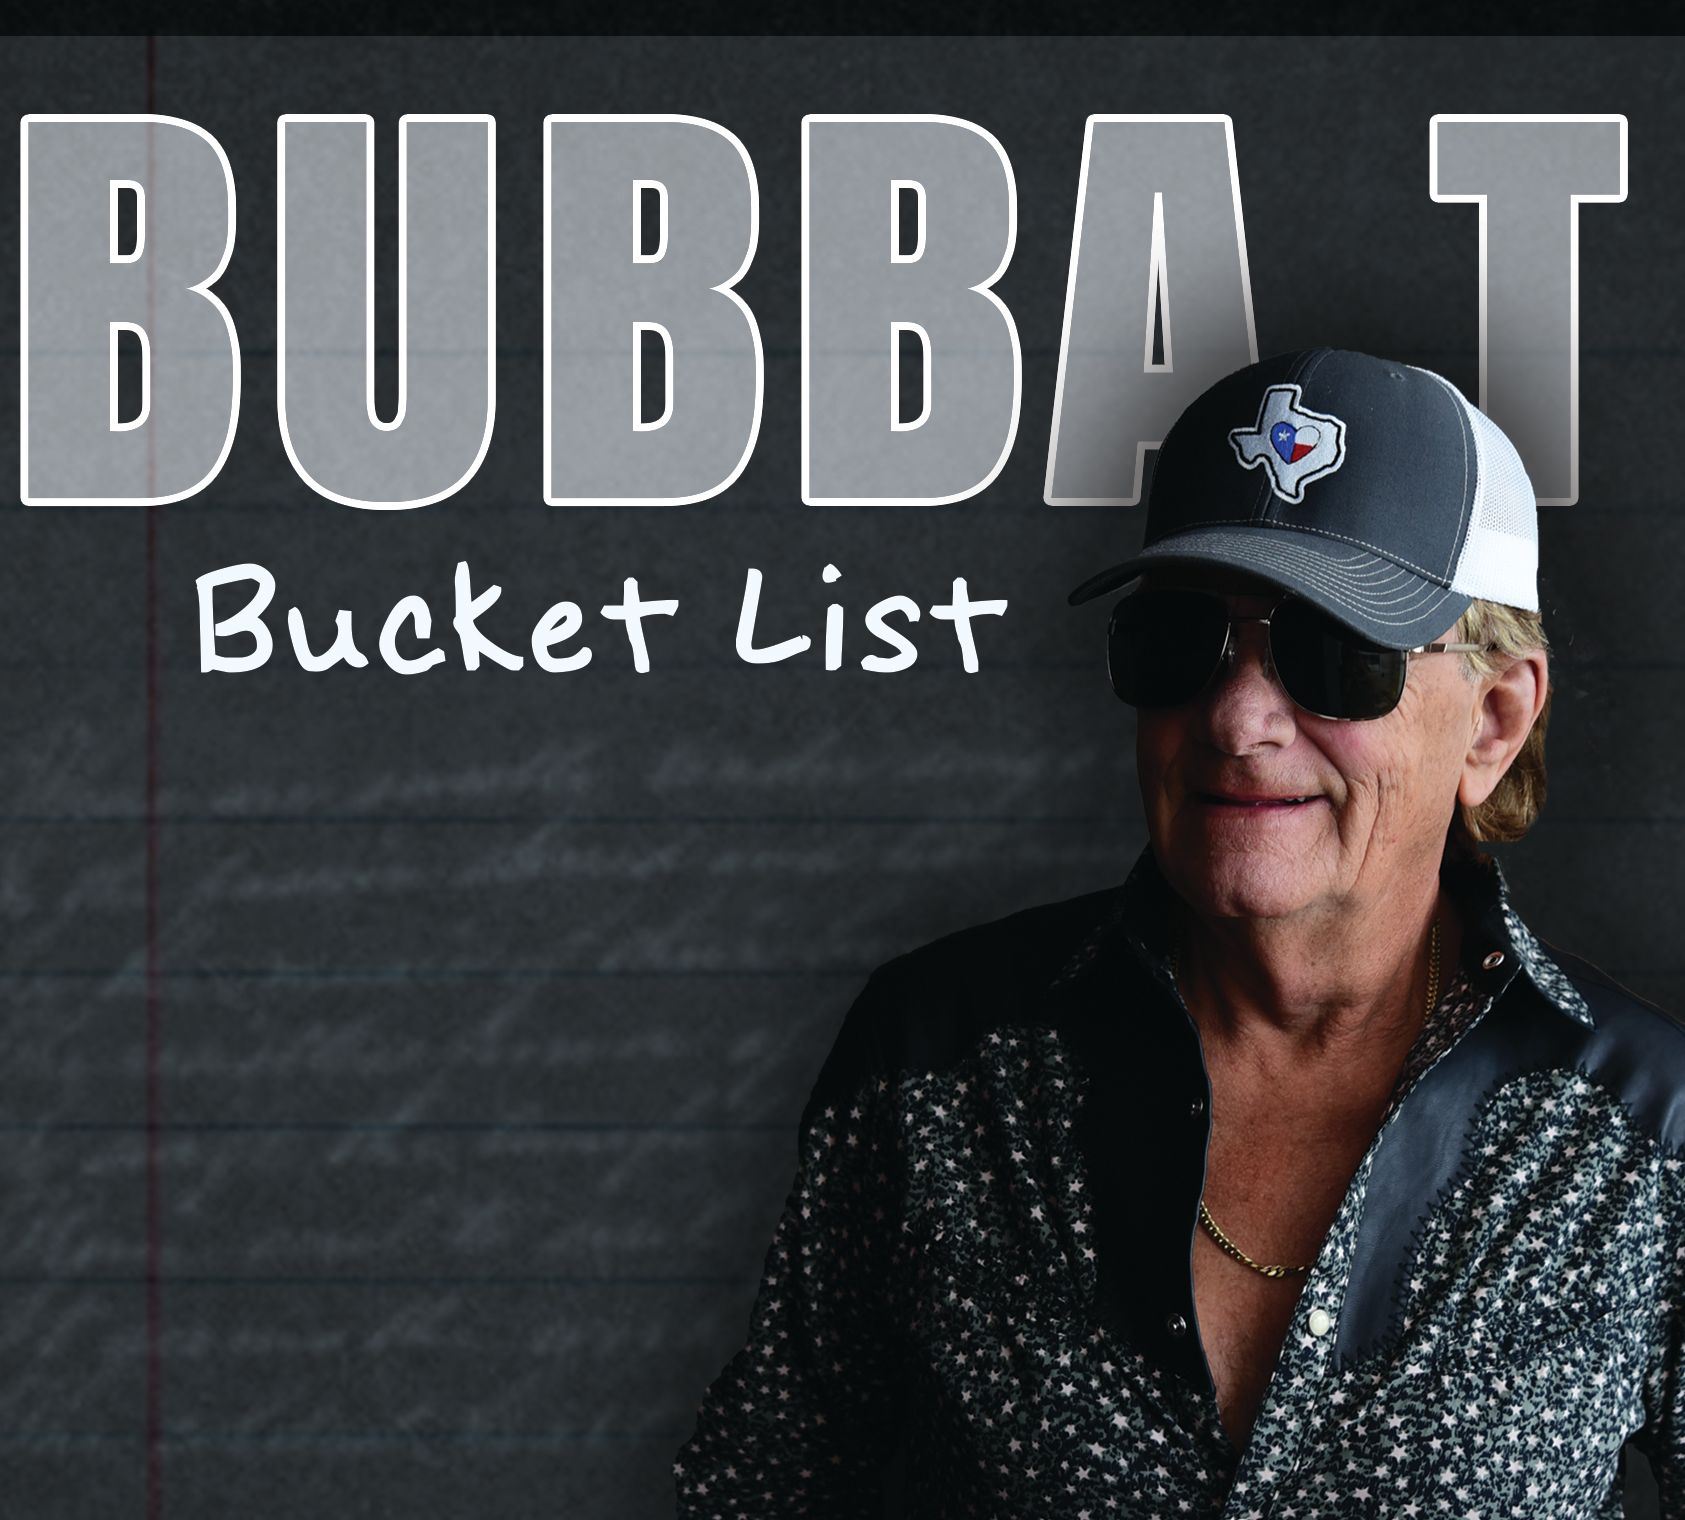 Get the Bucket List CD in the Bubba T Store! -